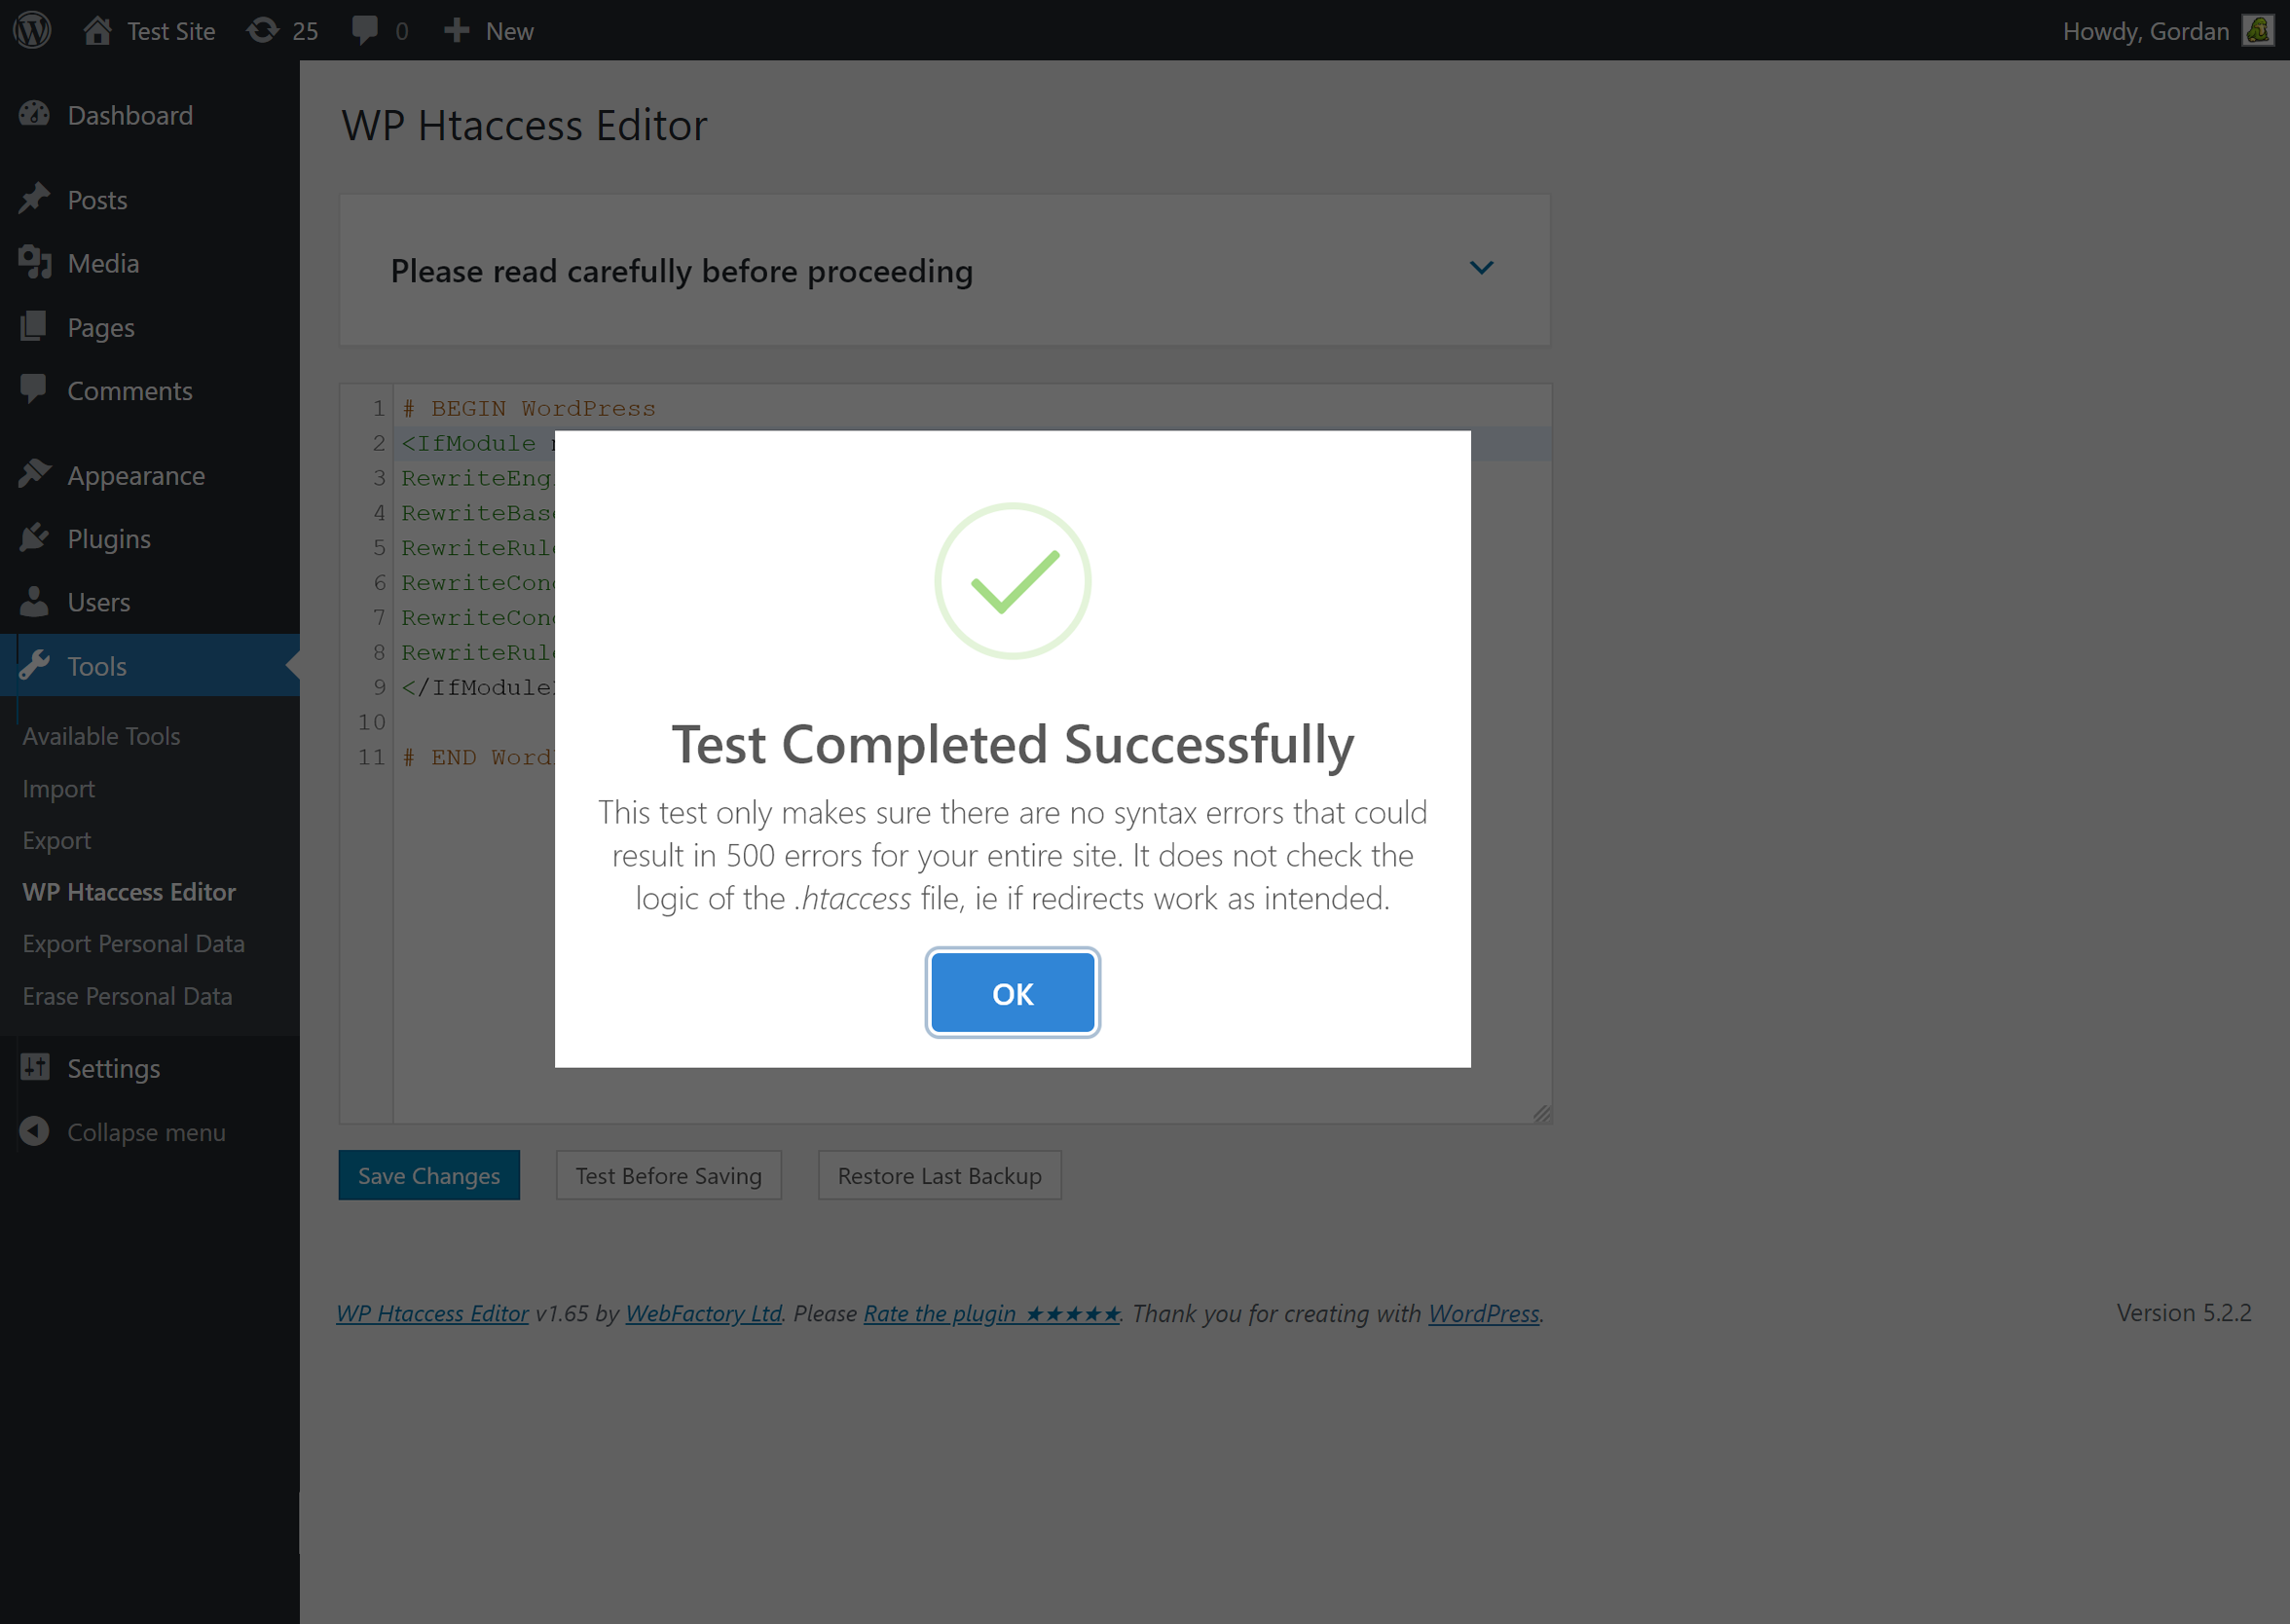 Htaccess Editor – Safely Edit Htaccess File Screenshot modificare htaccess wordpress - screenshot 3 - Modificare htaccess Wordpress